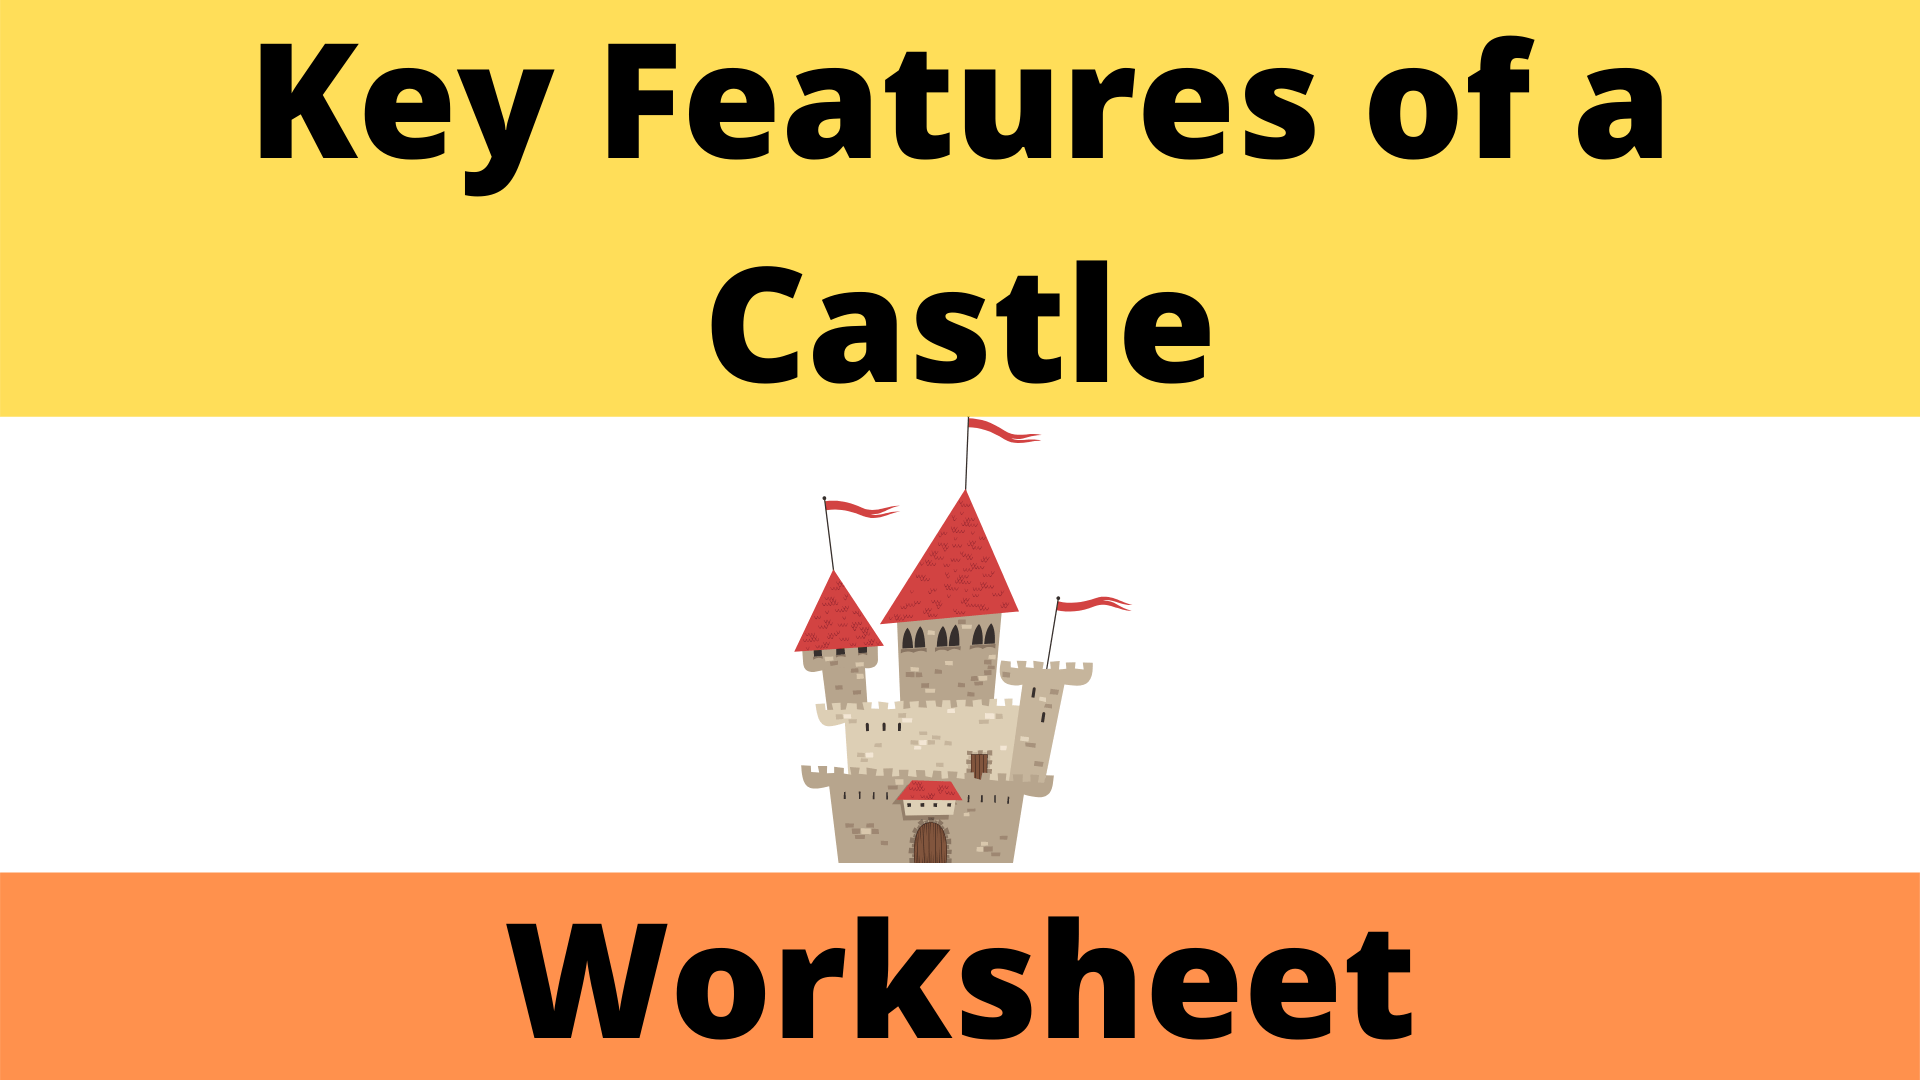 Key Features Of A Castle Worksheet